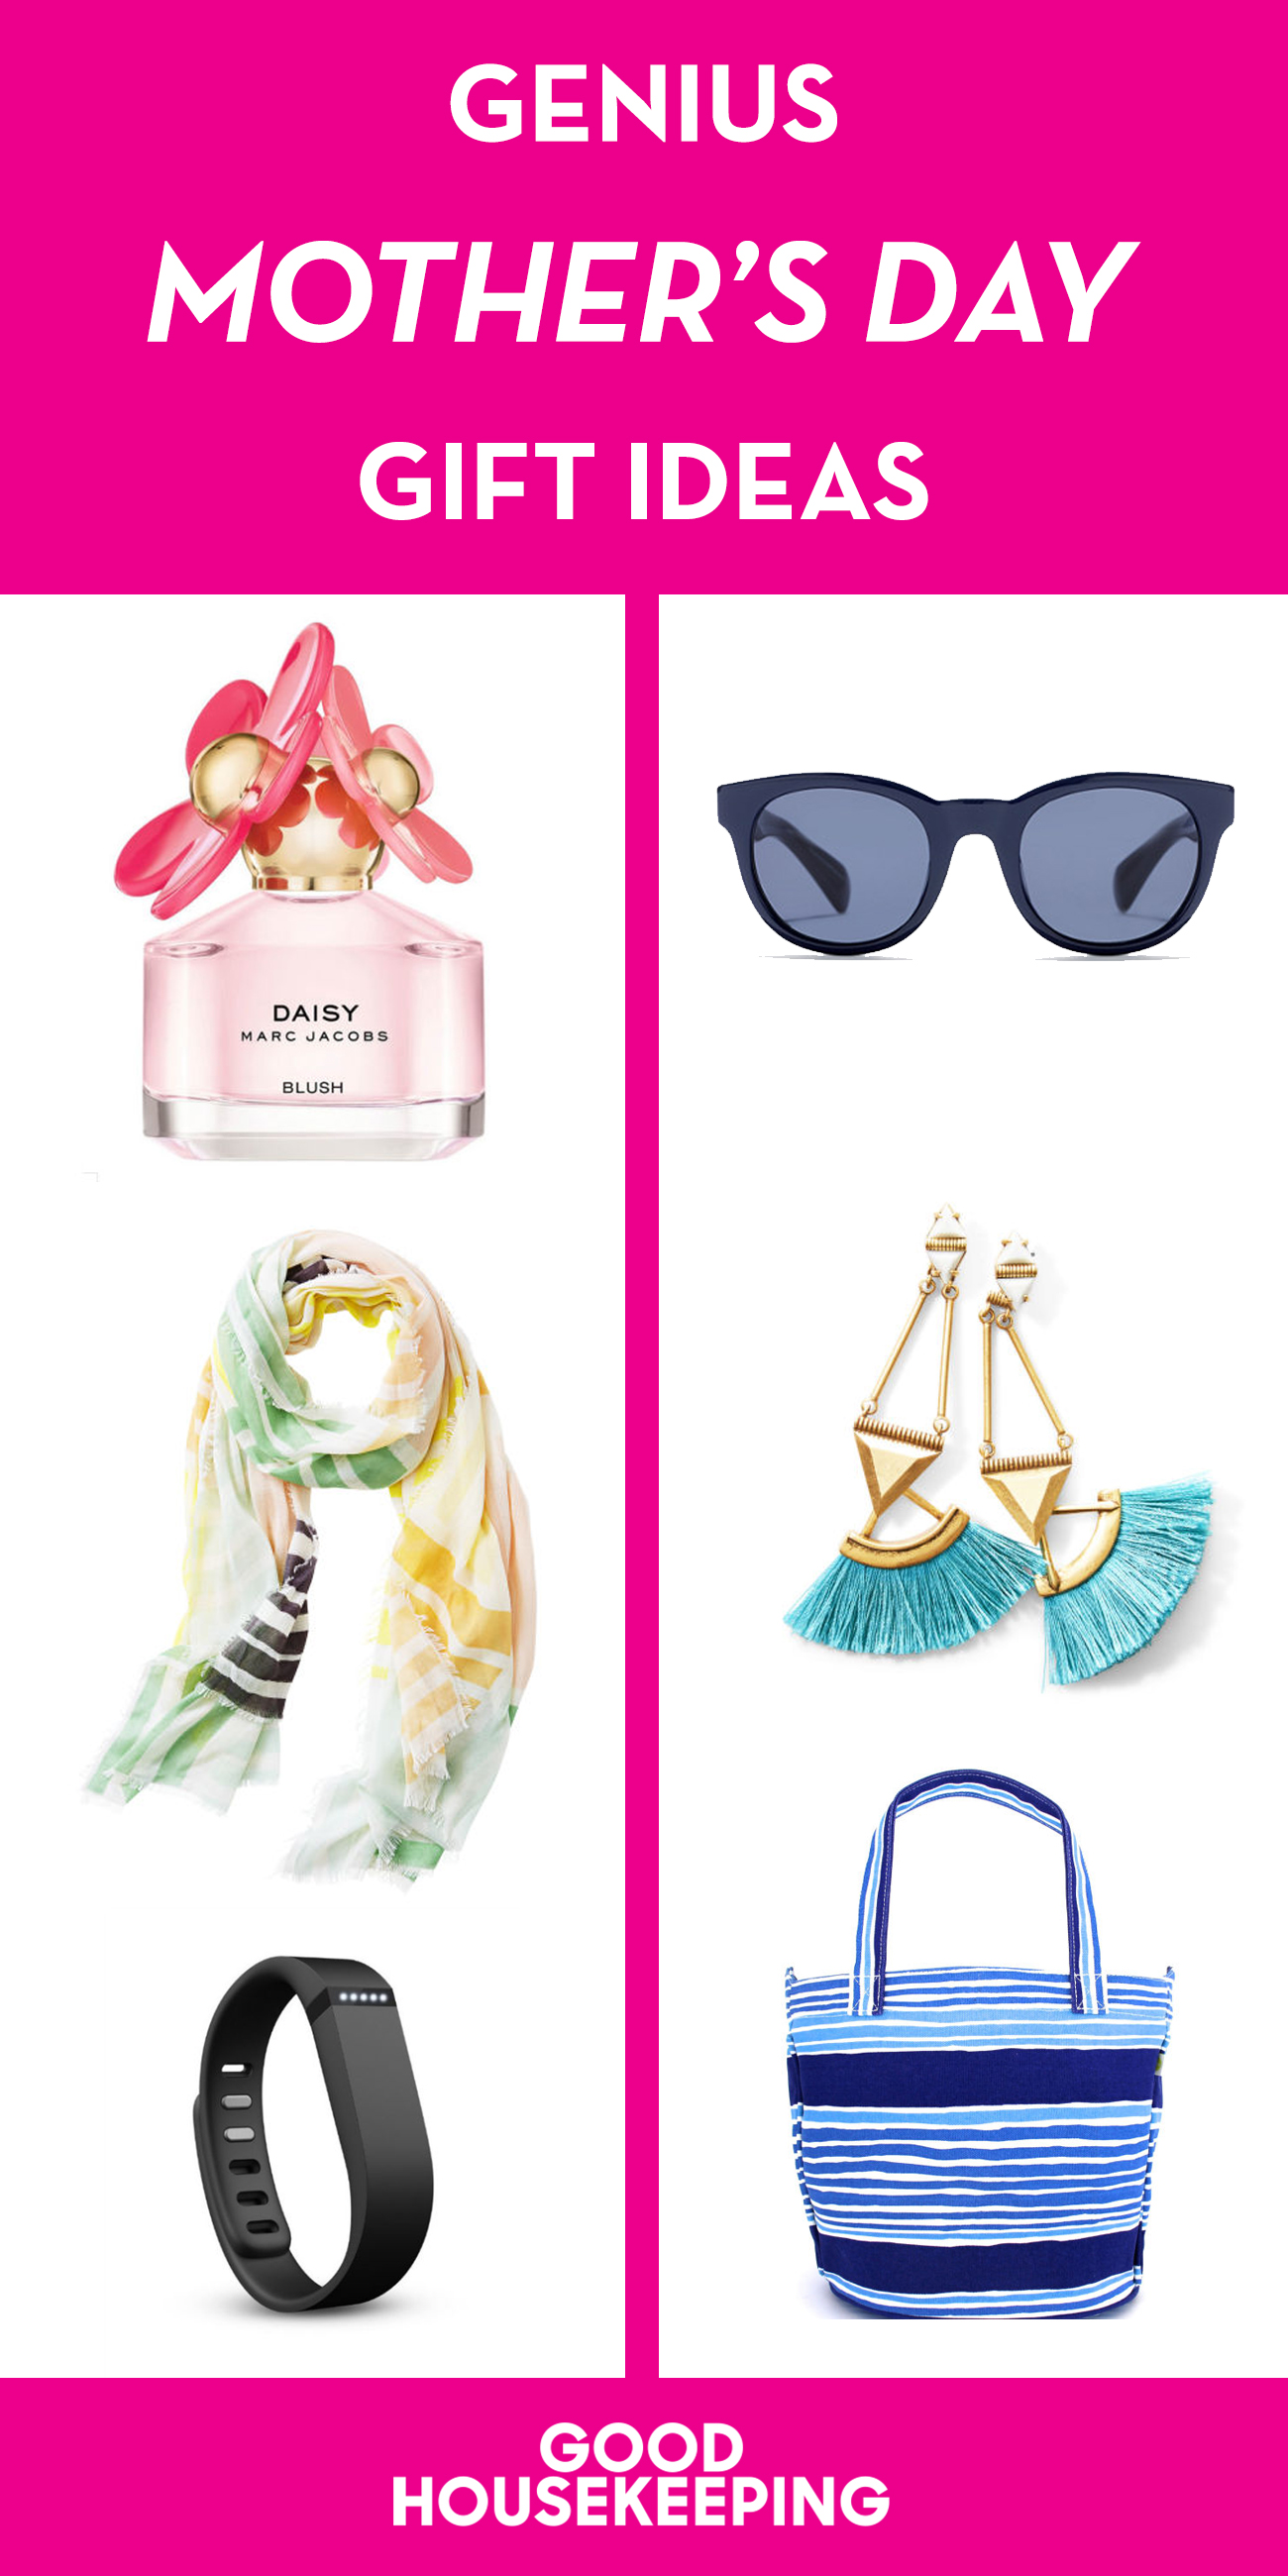 50 Best Mother s Day Gift Ideas Presents for Mom on Mothers Day